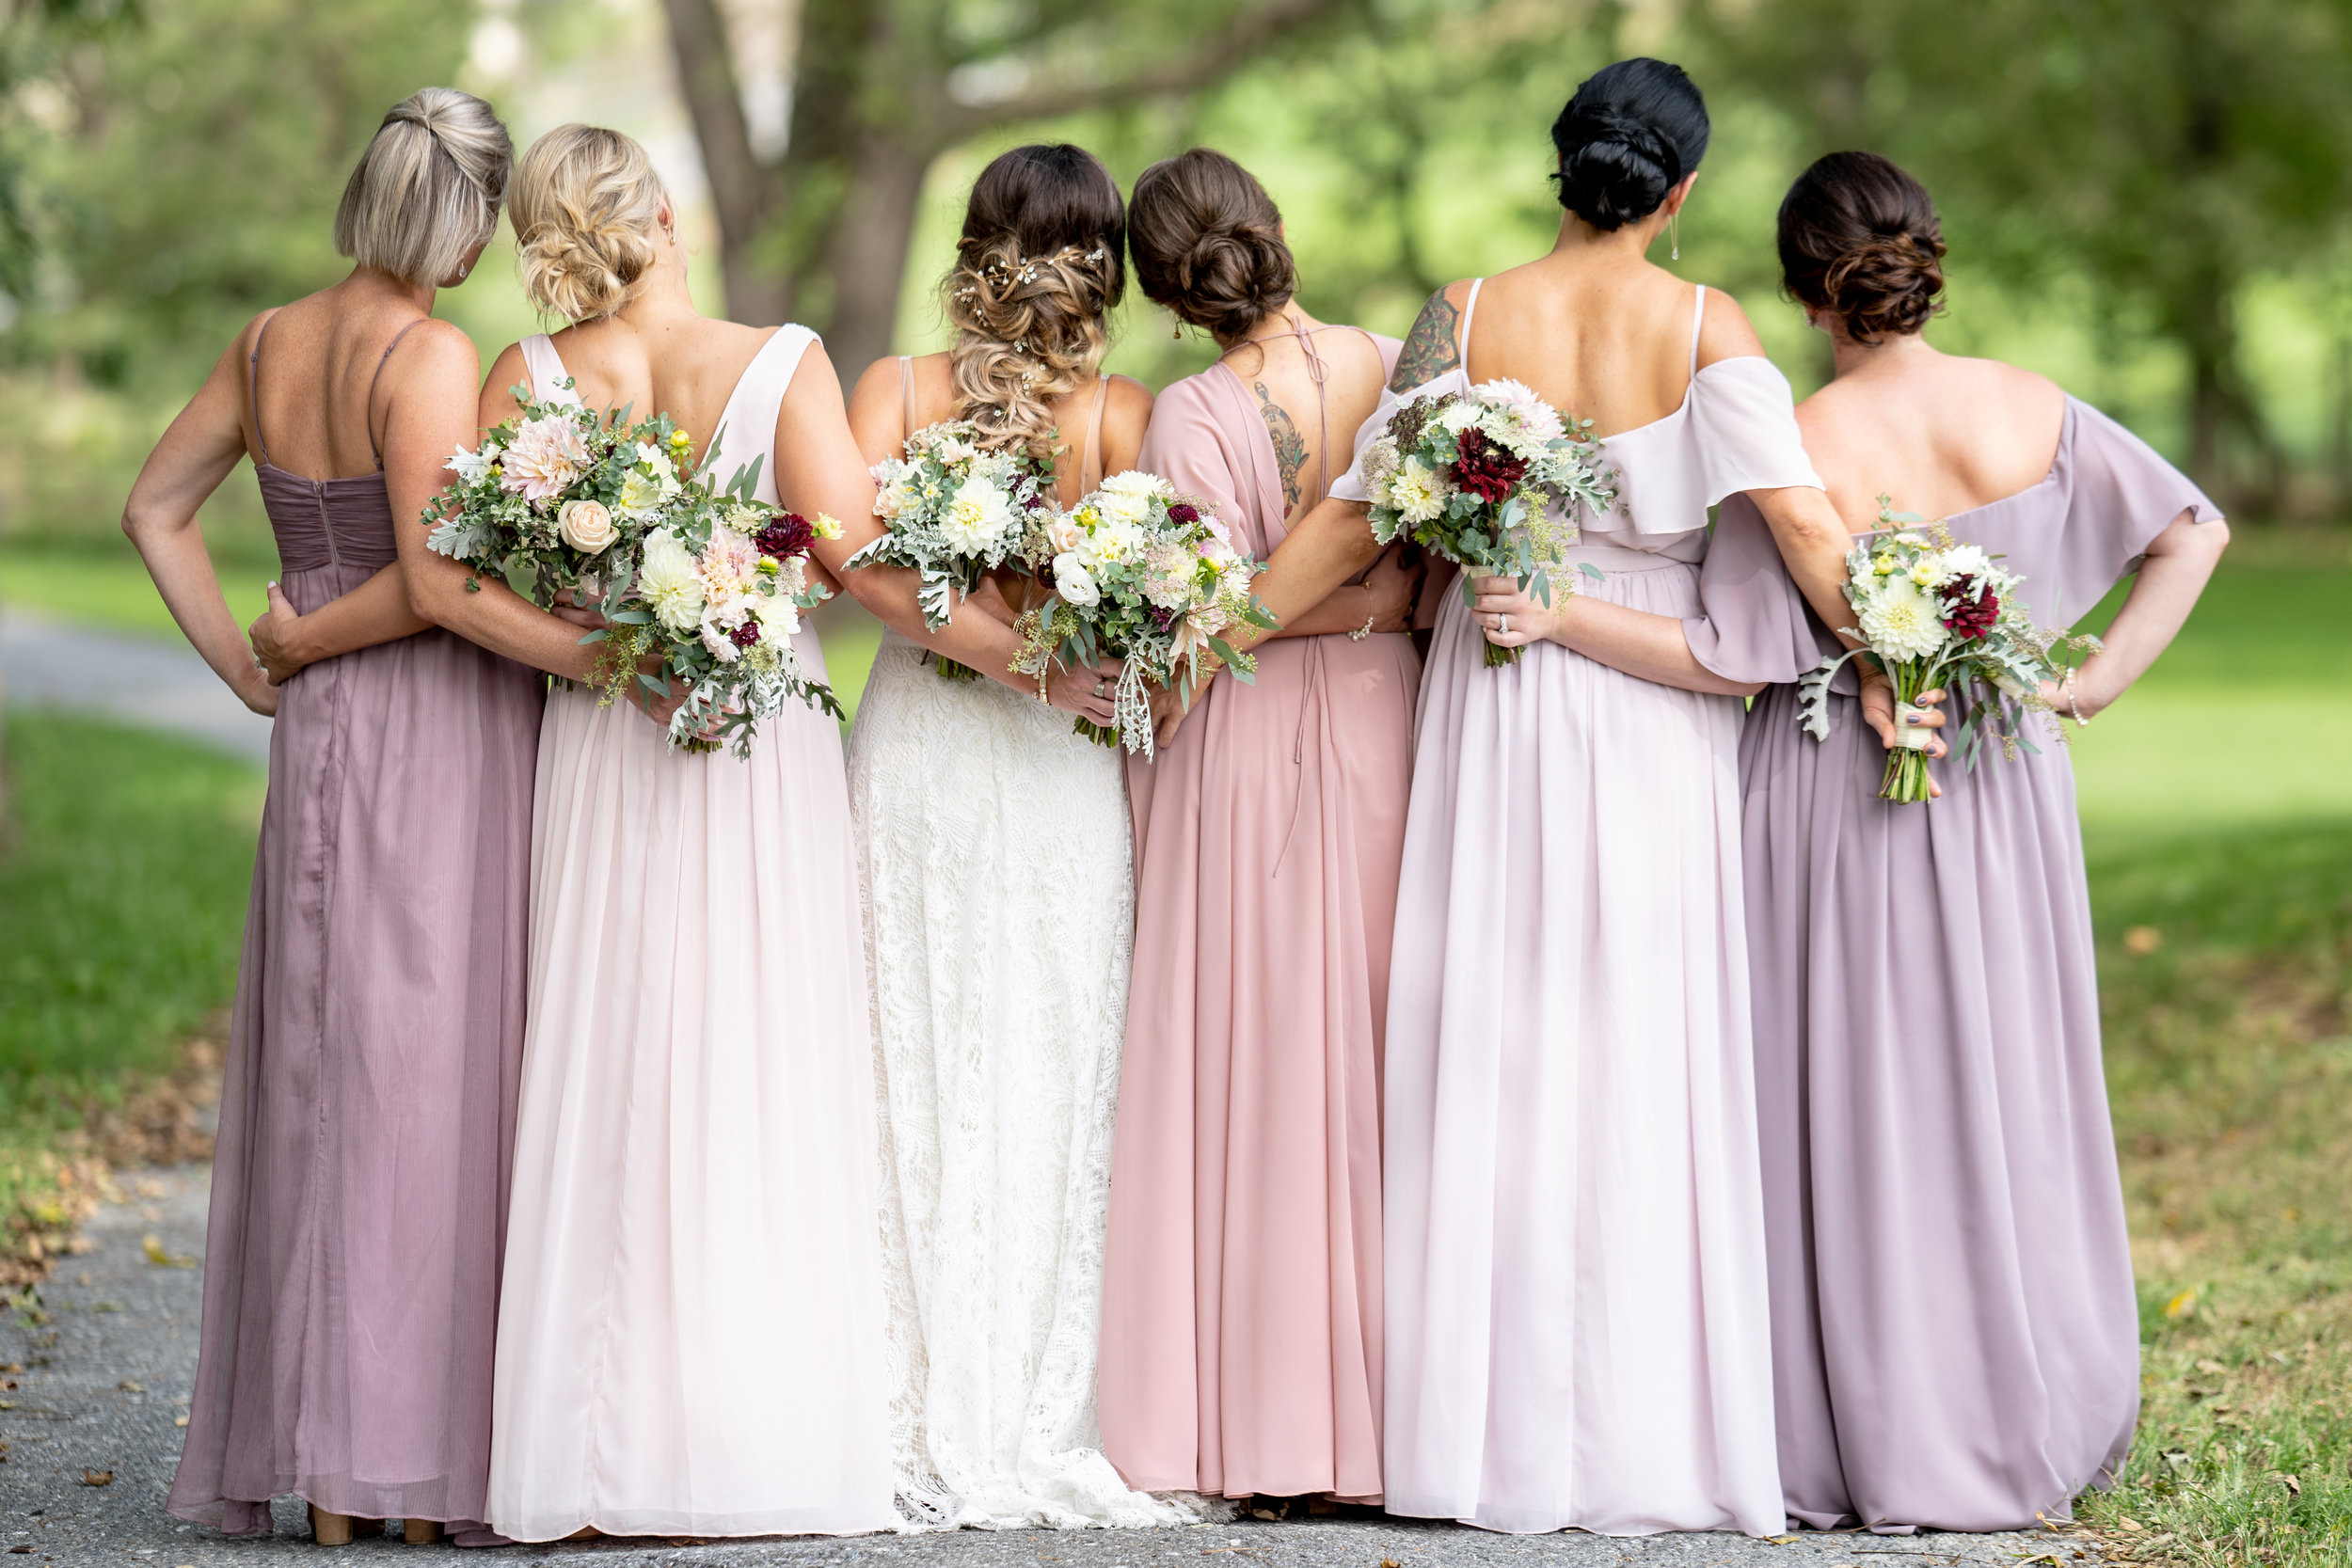 We love how the long light colored dresses really make the flowers and especially the deep red dahlias pop!